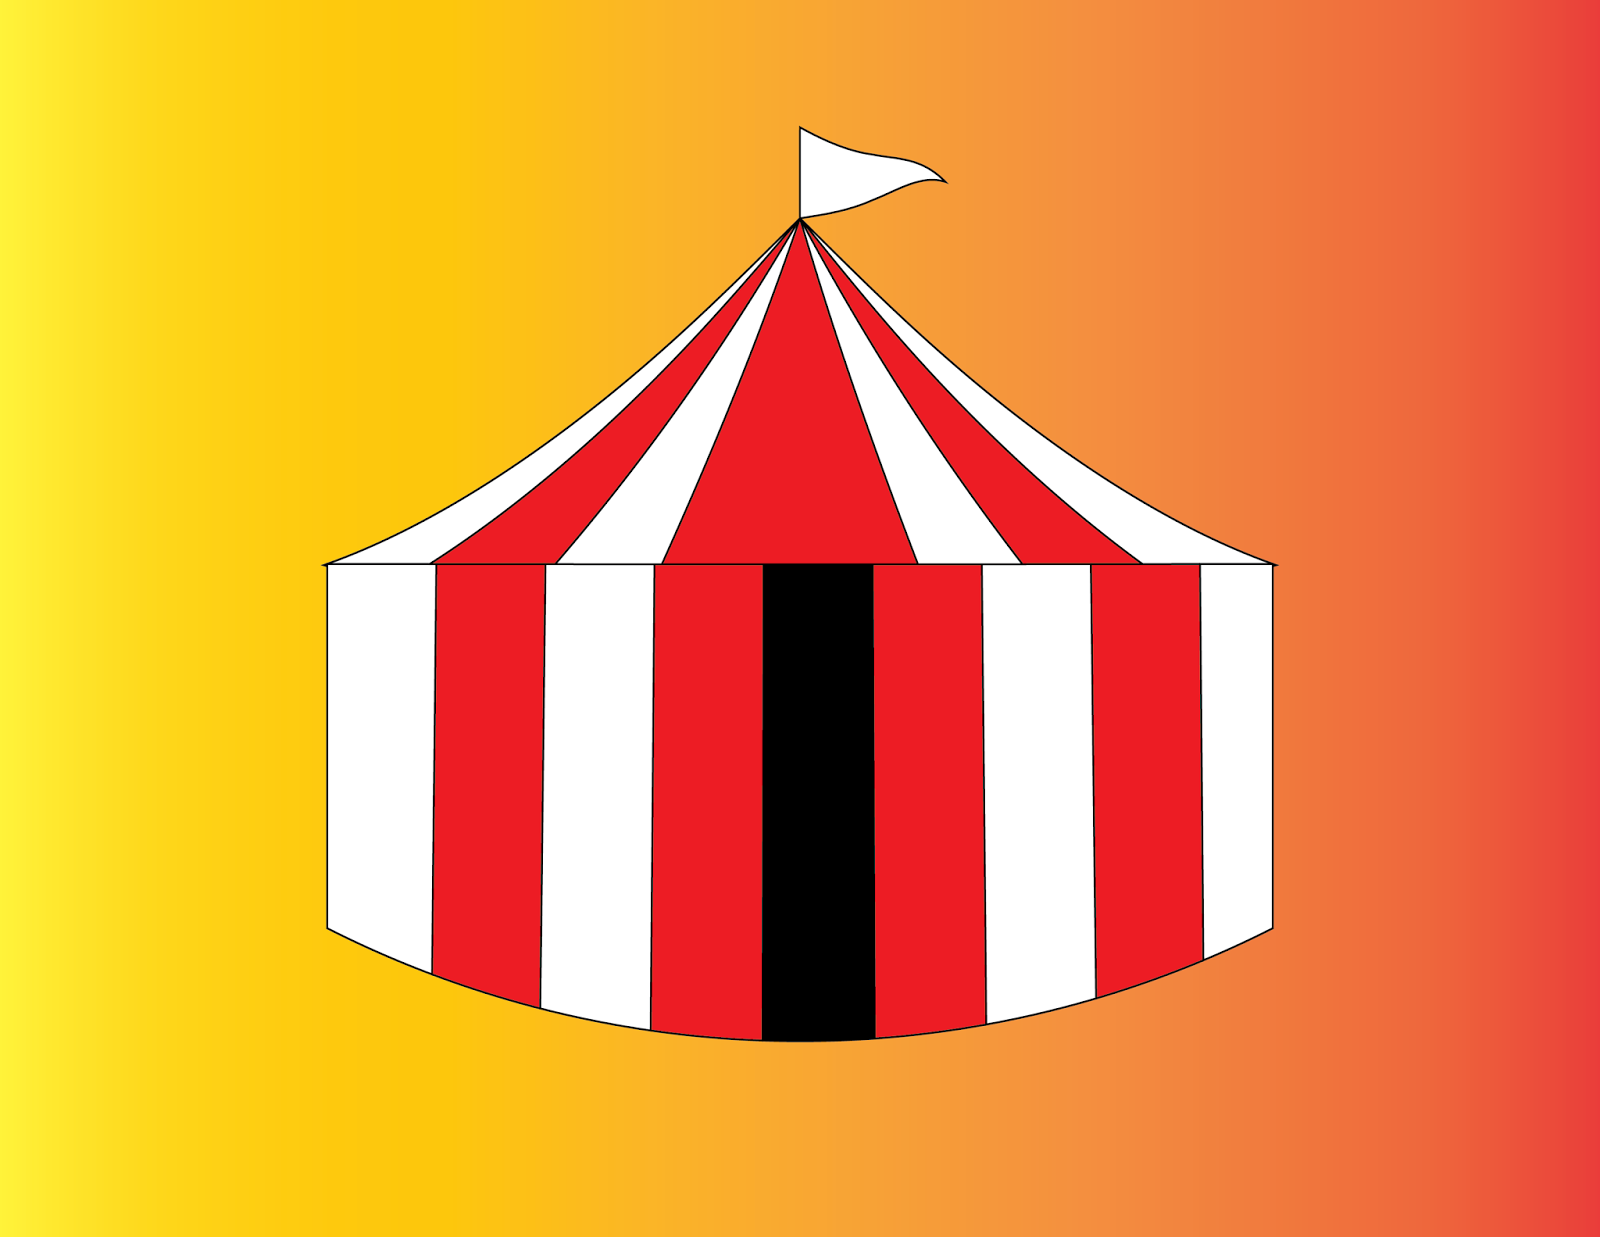 Circus Tent & Andrew Huizar Computerized Graphic Design: Circus Tent